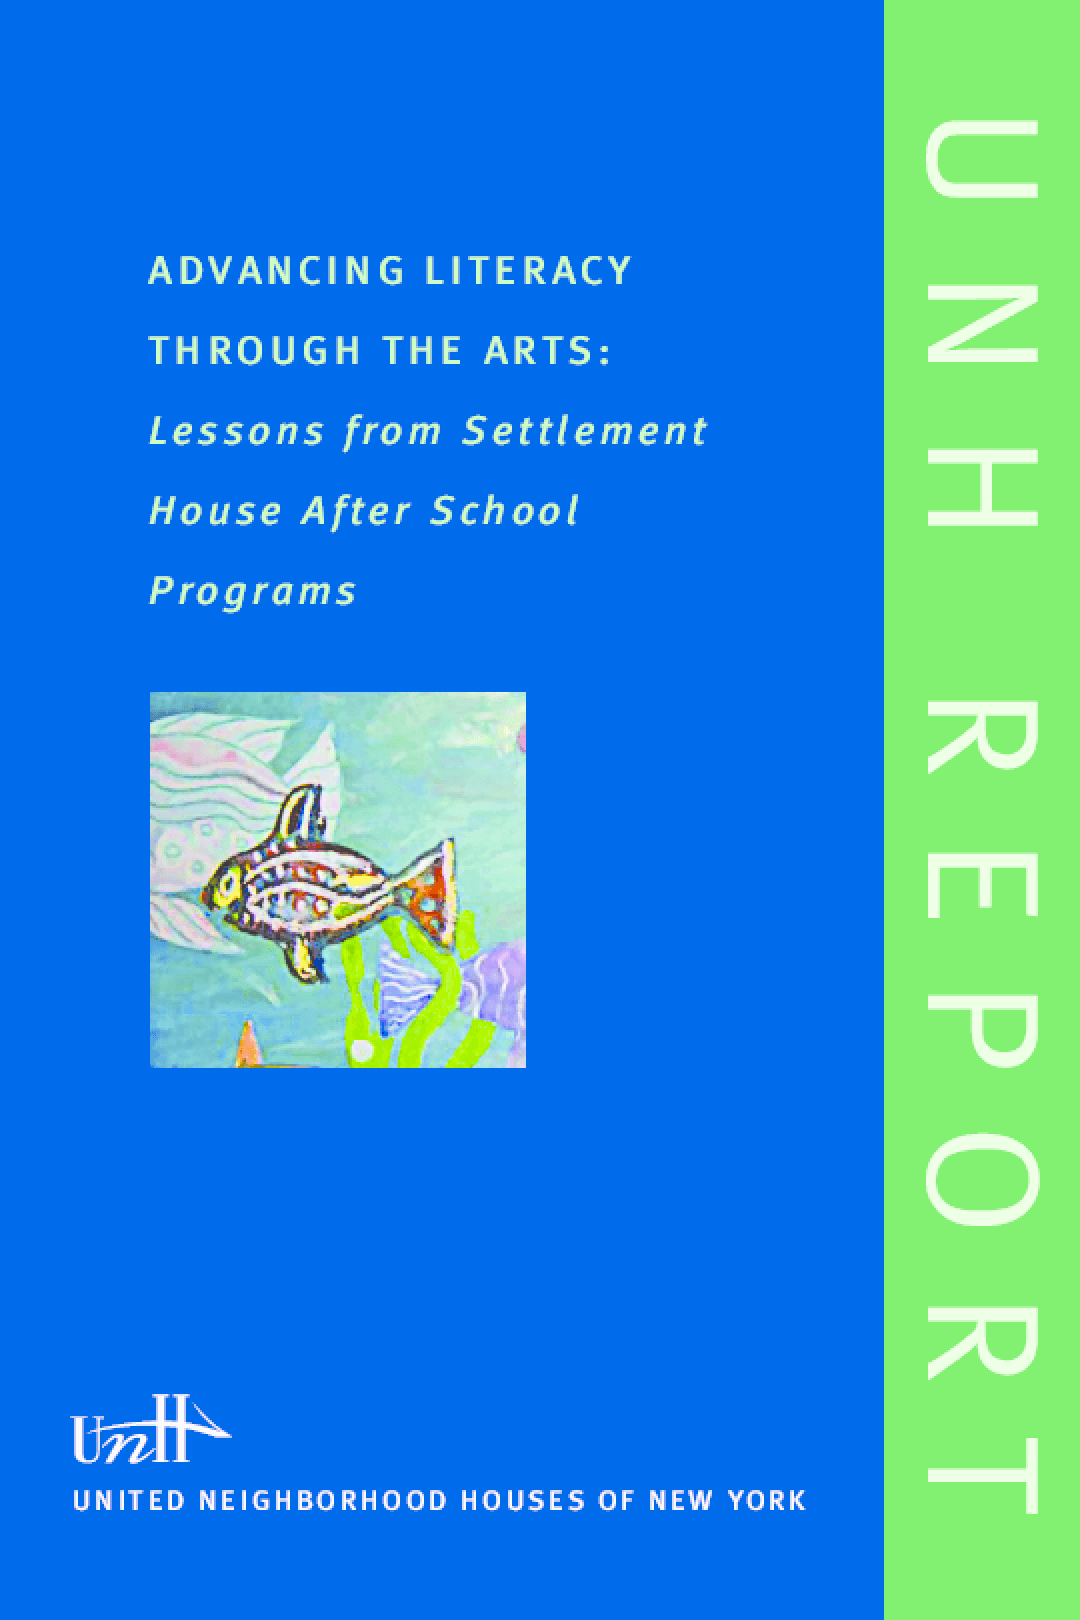 Advancing Literacy Through the Arts: Lessons from Settlement House After School Programs